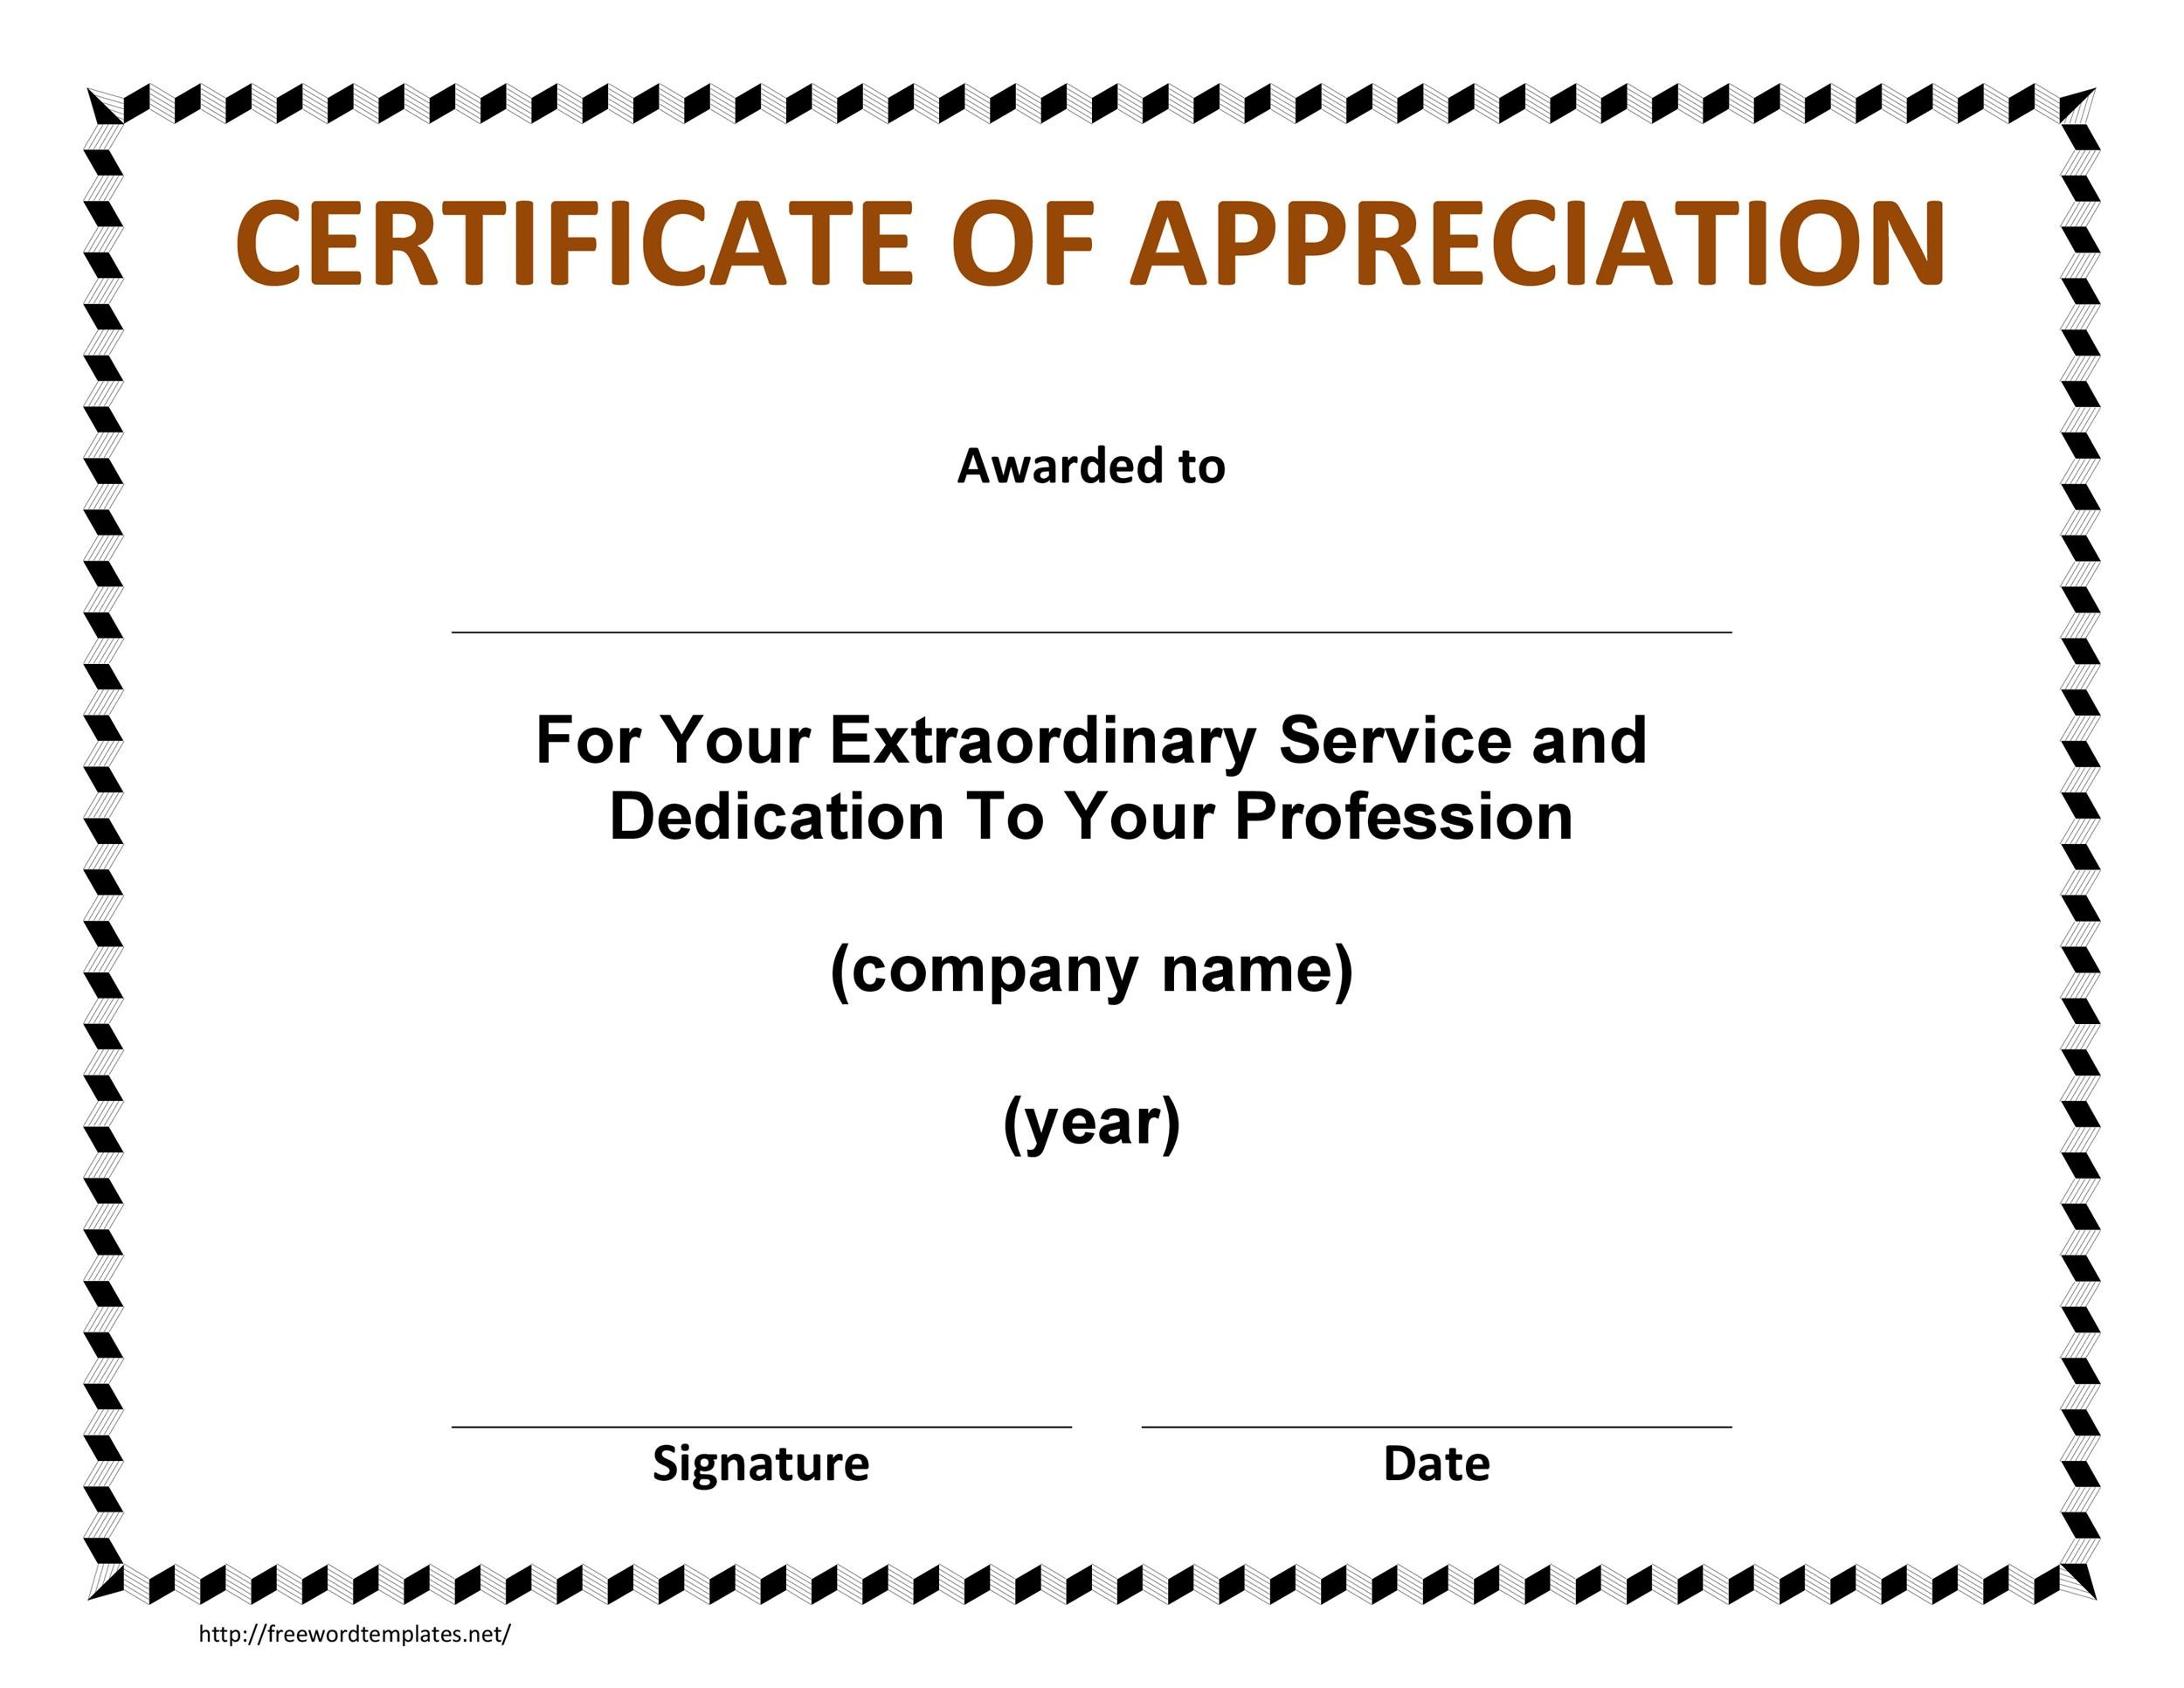 30 free certificate of appreciation templates and letters printable certificate of appreciation 04 pronofoot35fo Gallery